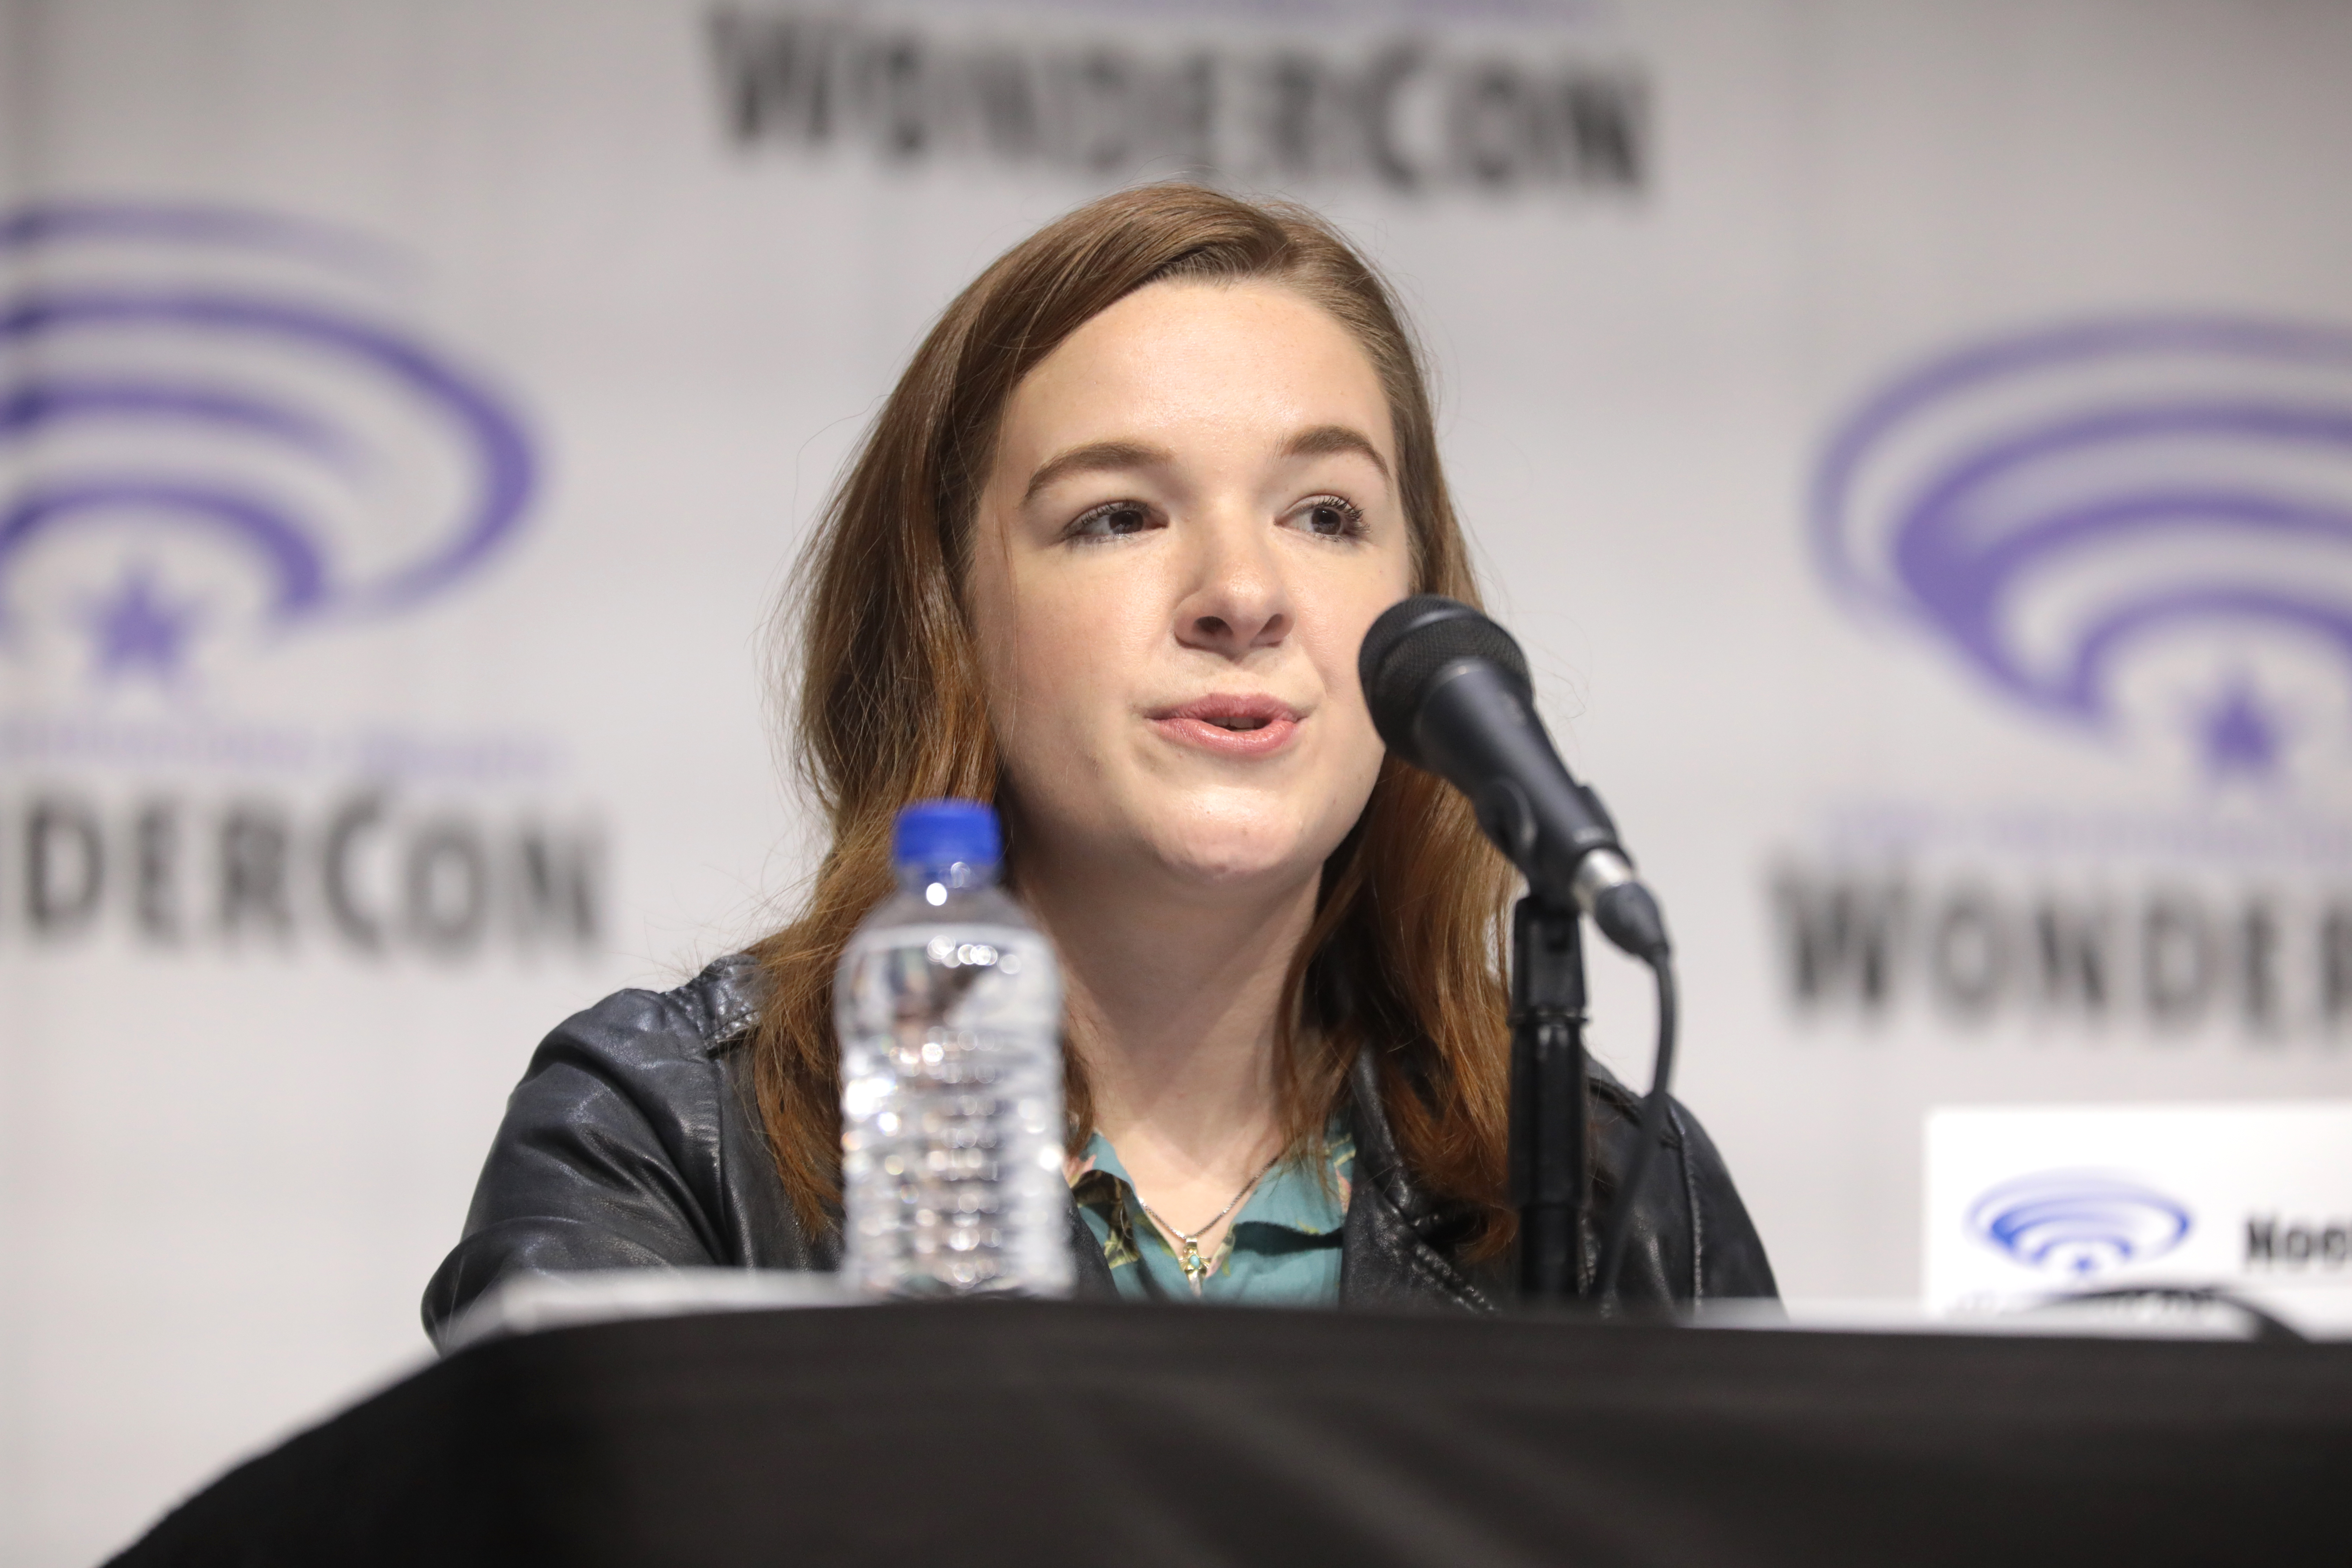 Stevenson at the 2019 [[WonderCon]] for ''[[She-Ra and the Princesses of Power]]''.